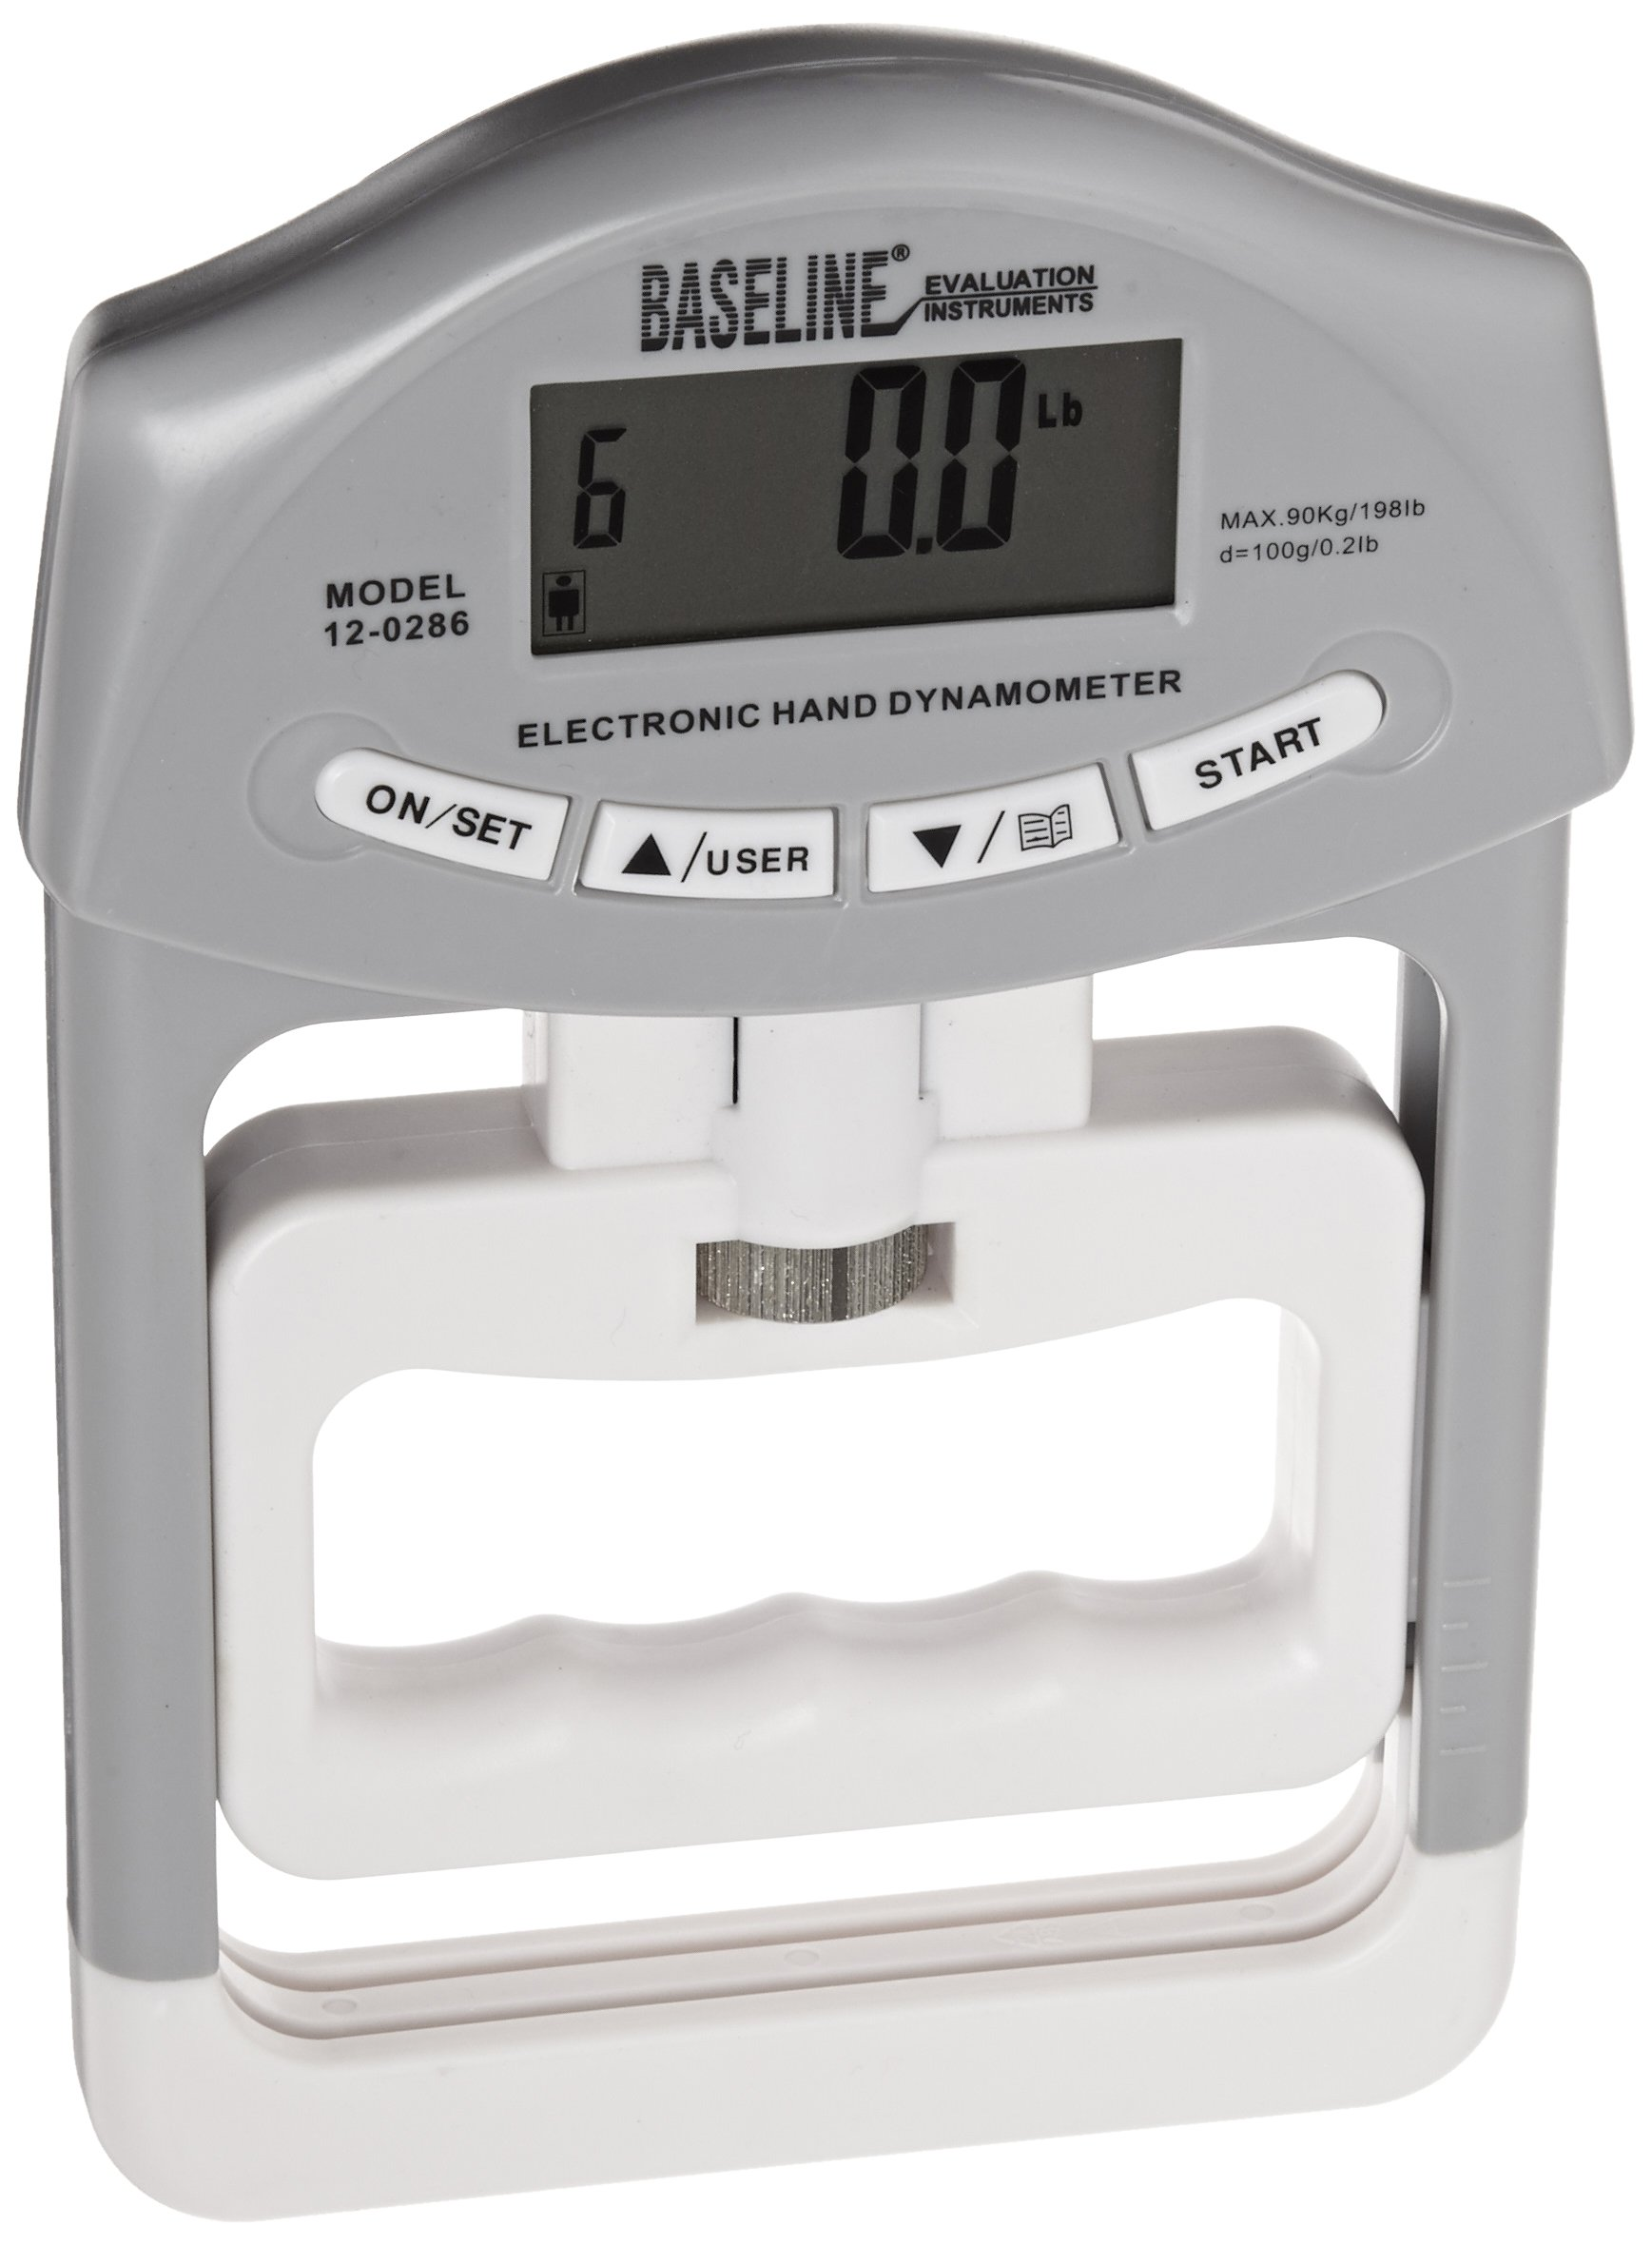 Baseline 12-0286 Electronic Smedly Hand Dynamometer, 200 lbs Capacity